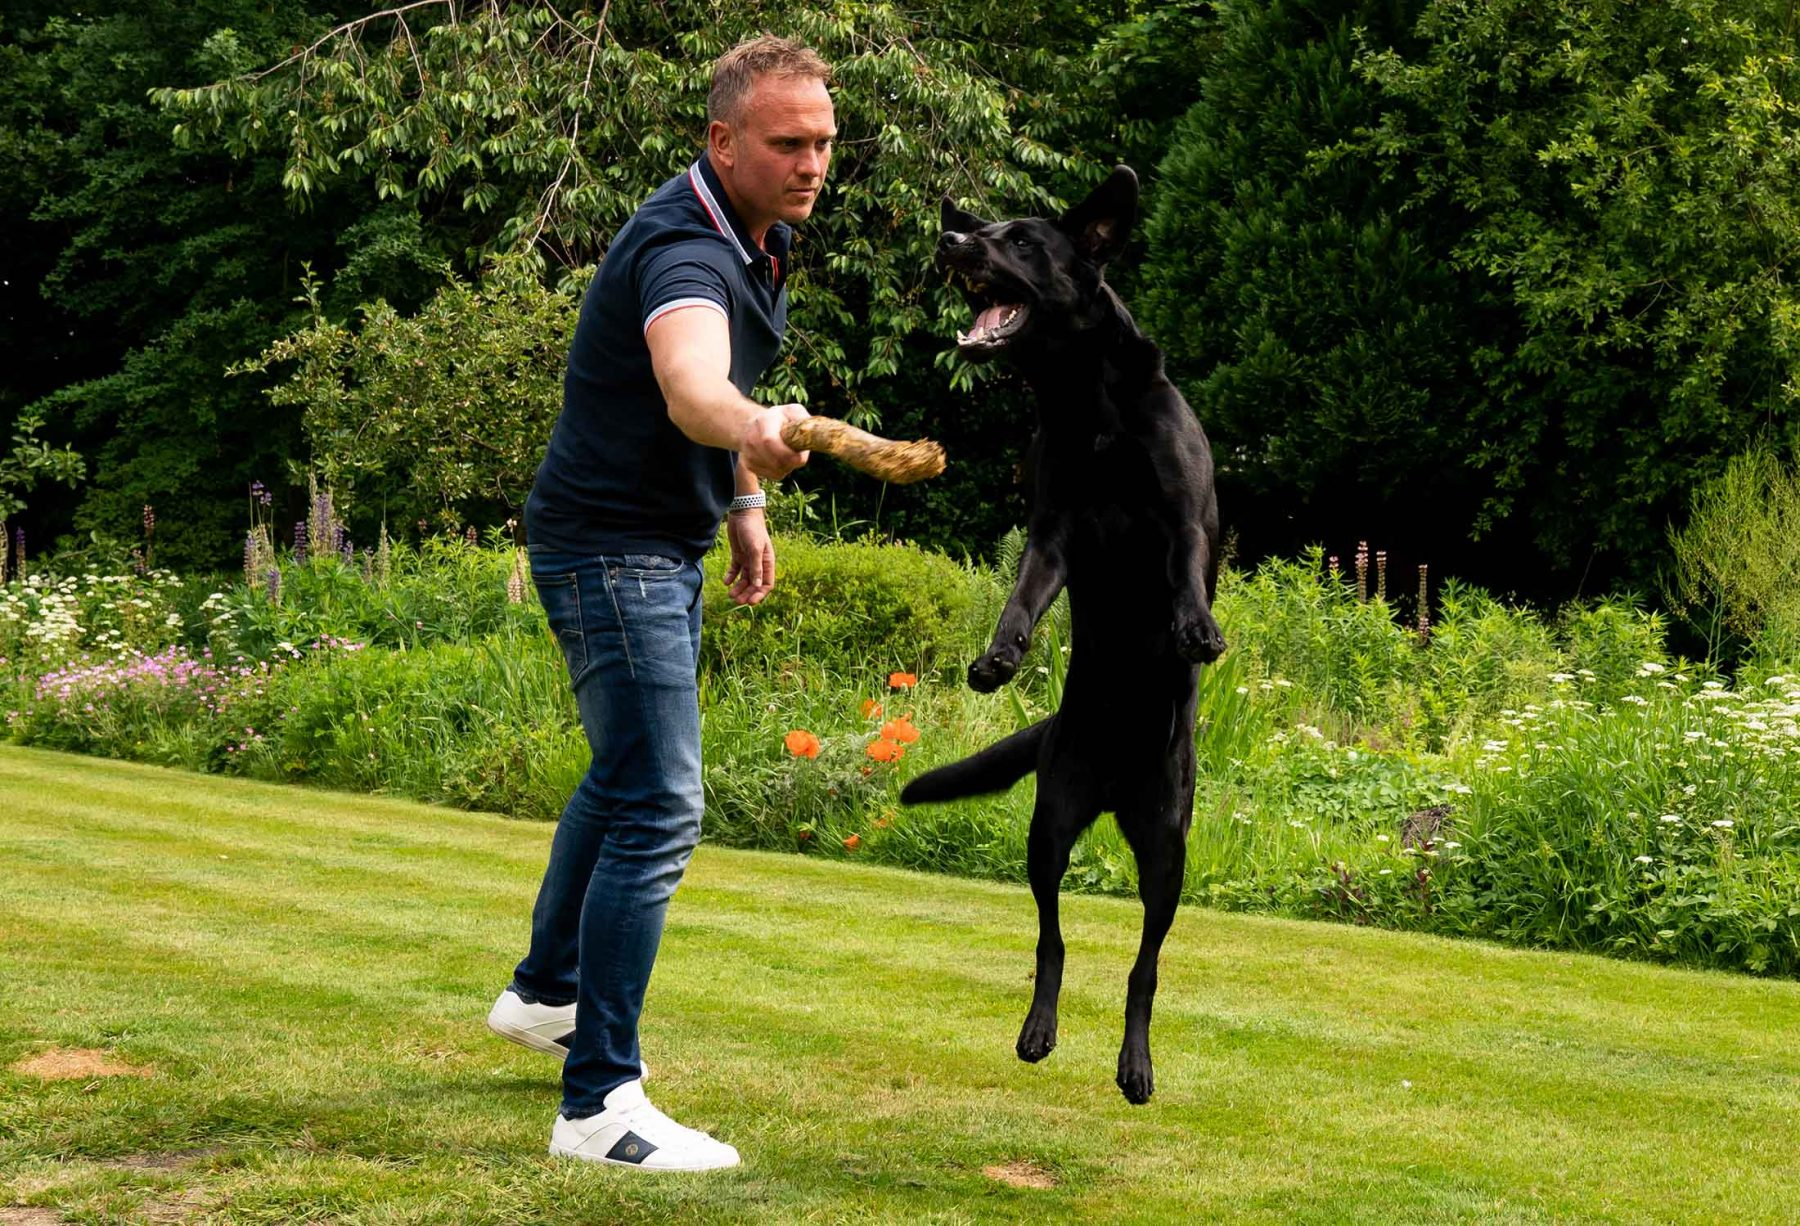 A dog leaps for a stick held by its owner